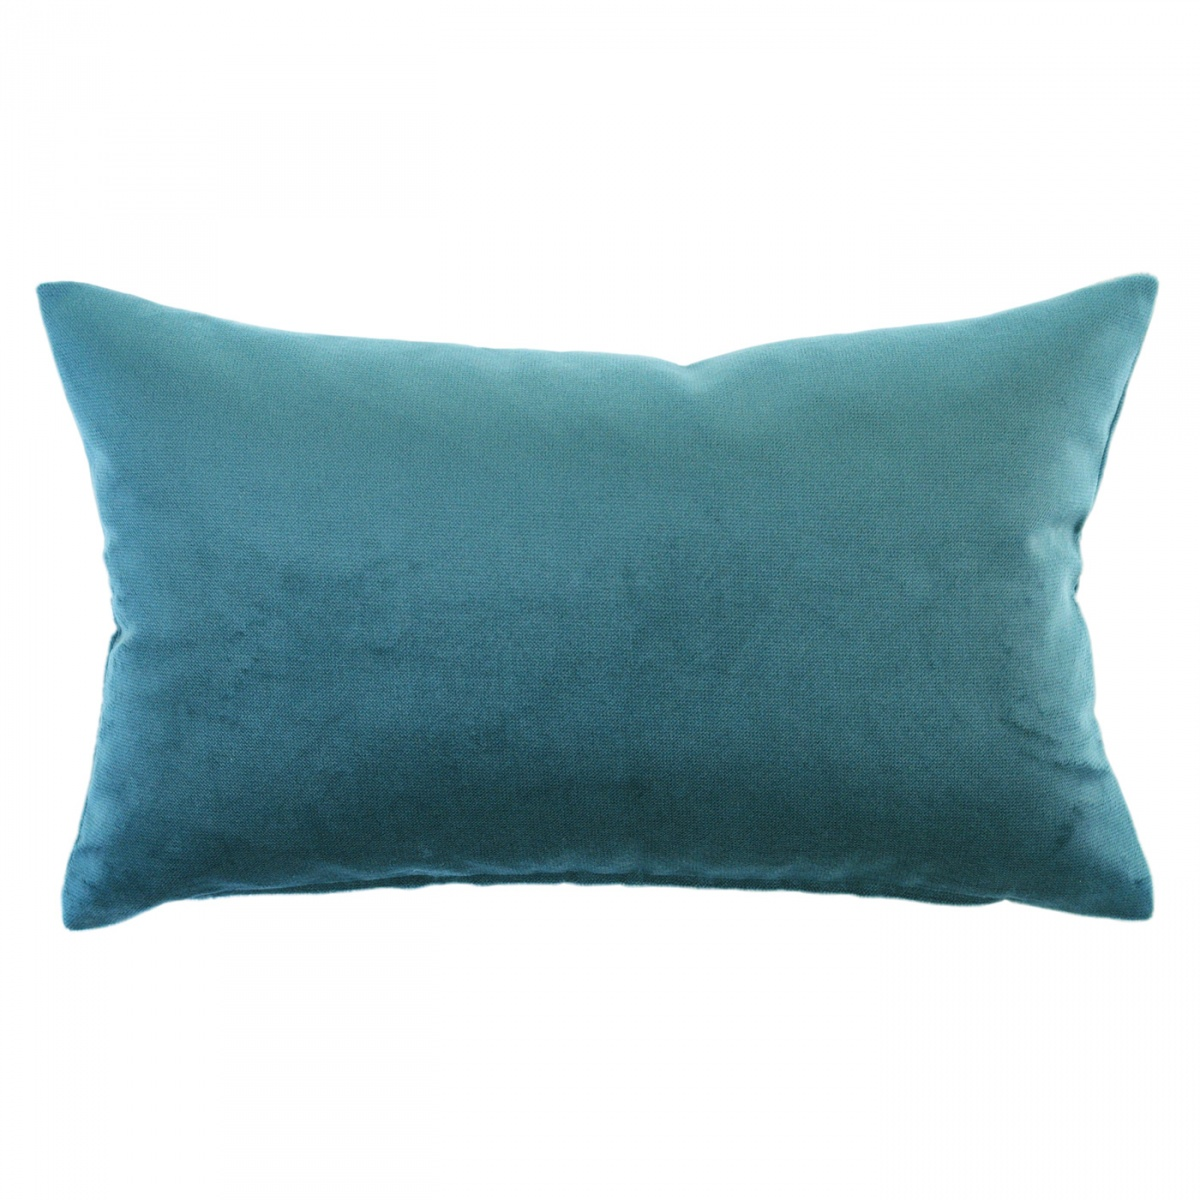 Mystere Peacock Velvet Cushion - 30x50cm